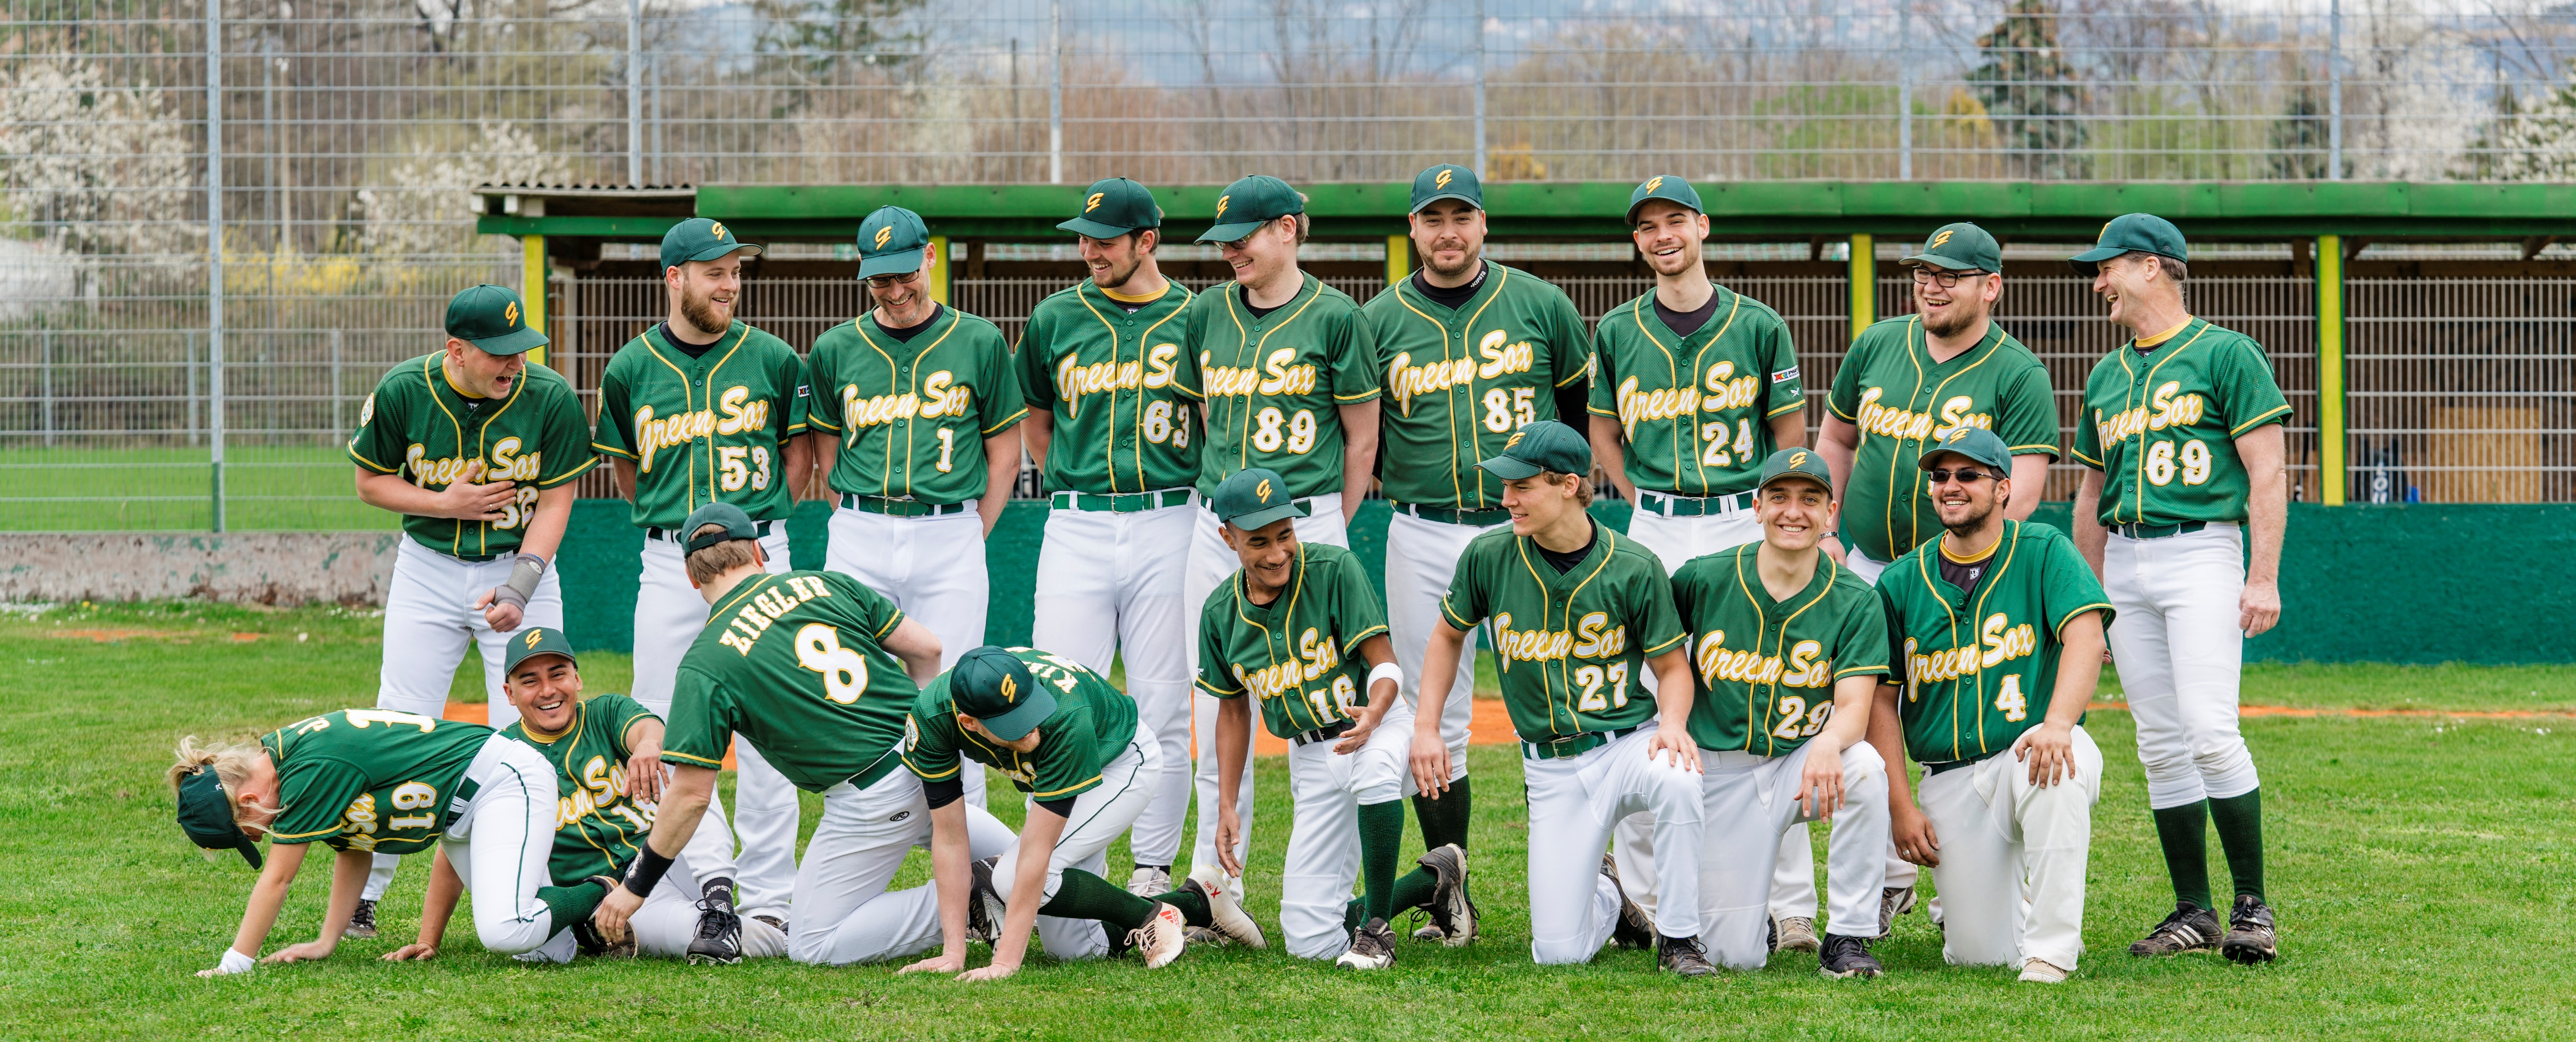 Greensox-8.jpg